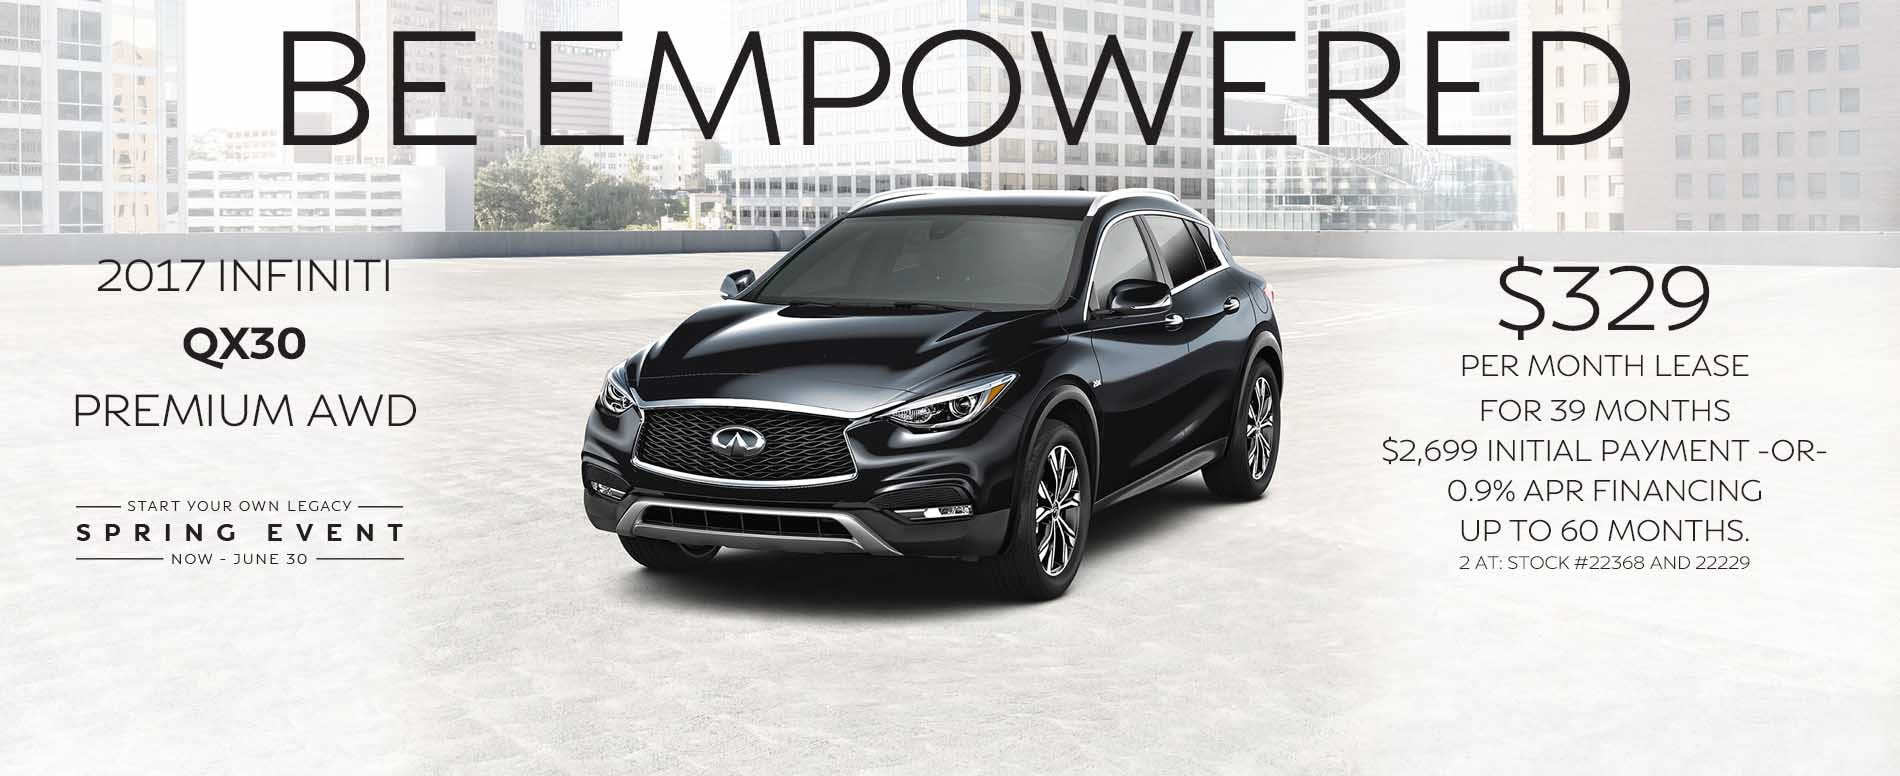 BE empowered. Lease a 2017 INFINITI QX30 for $329 per month with $2,699 due at signing or 0.9% APR financing up to 60 months.